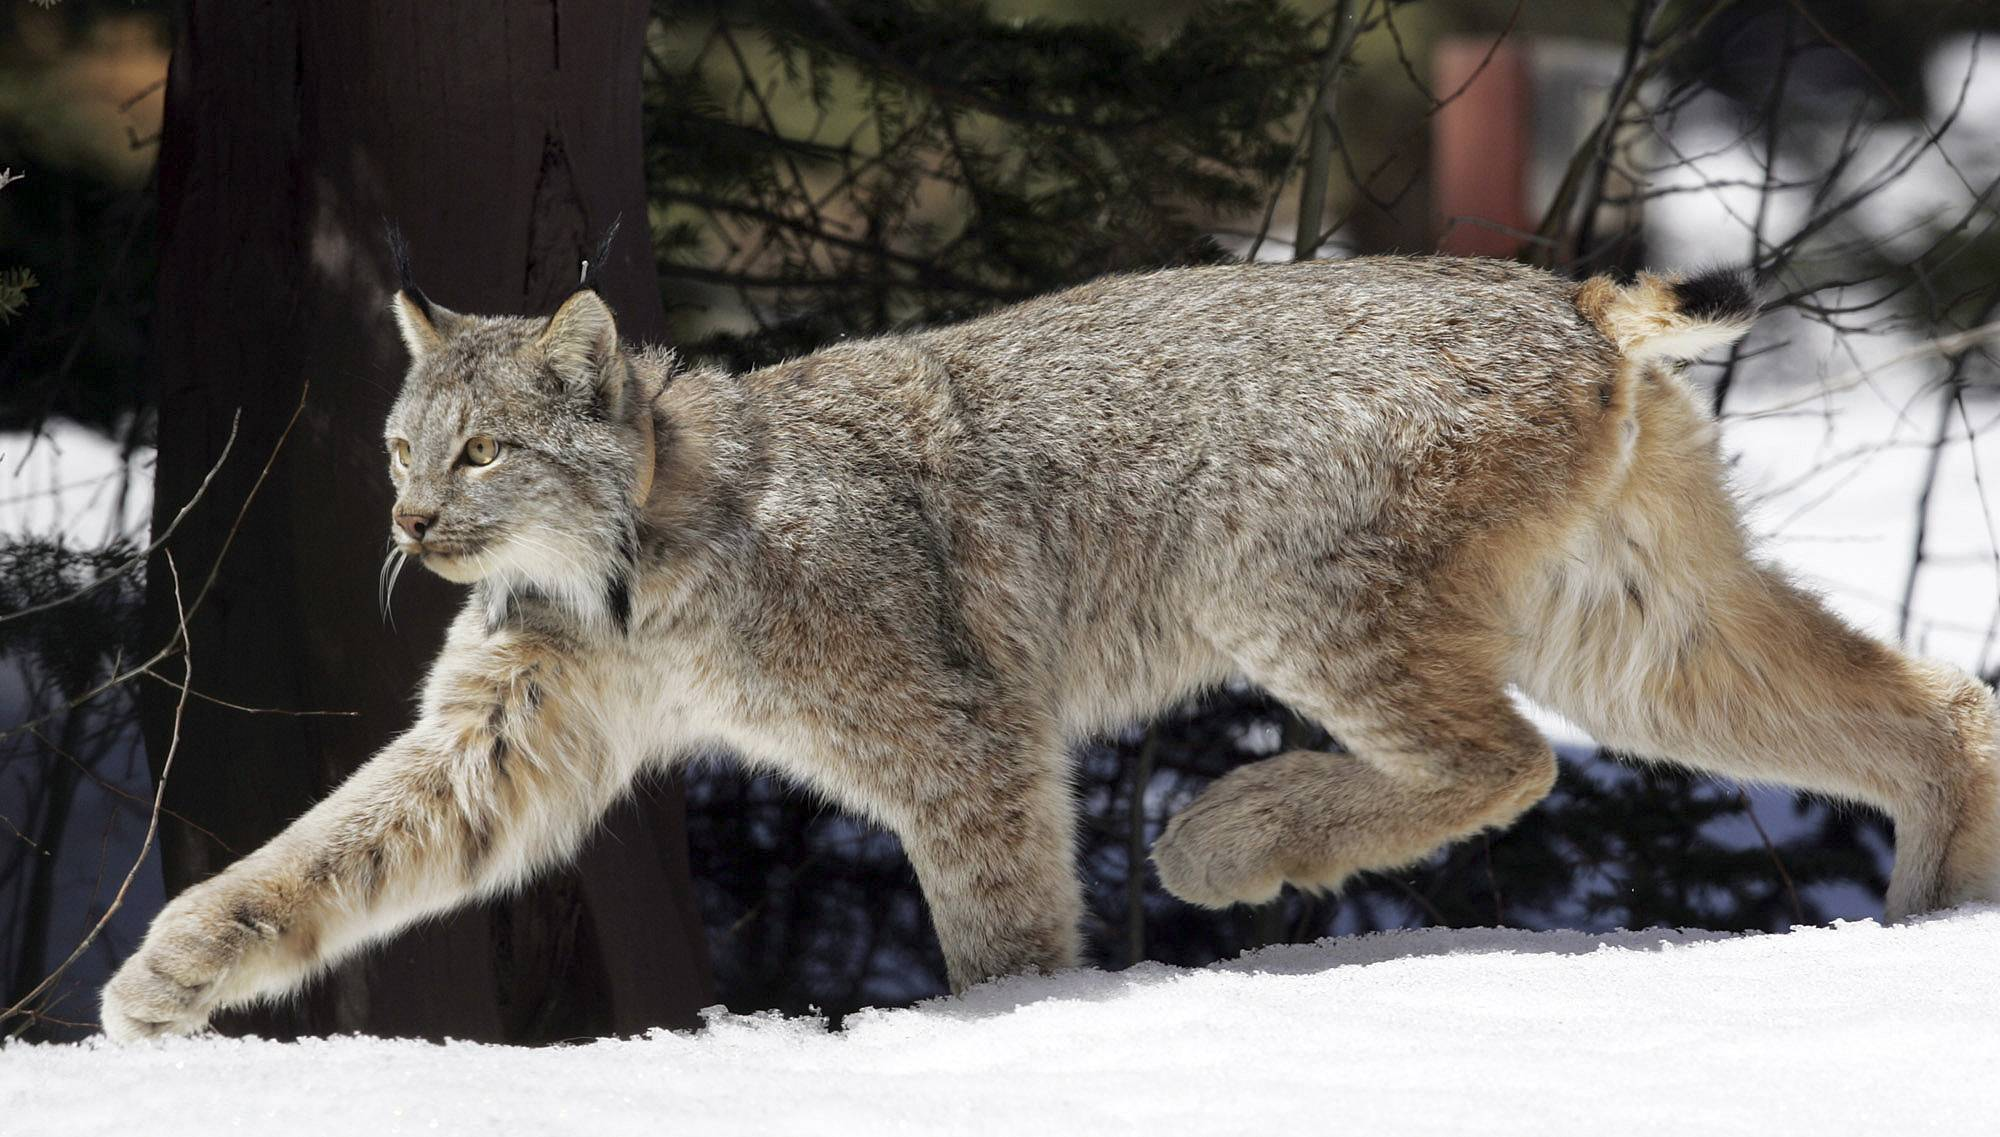 A Canada lynx heads into the Rio Grande National Forest after being released near Creede, Colo., in 2005. The U.S. government declared the snow-loving big cats a threatened species across the Lower 48 states in 2000.